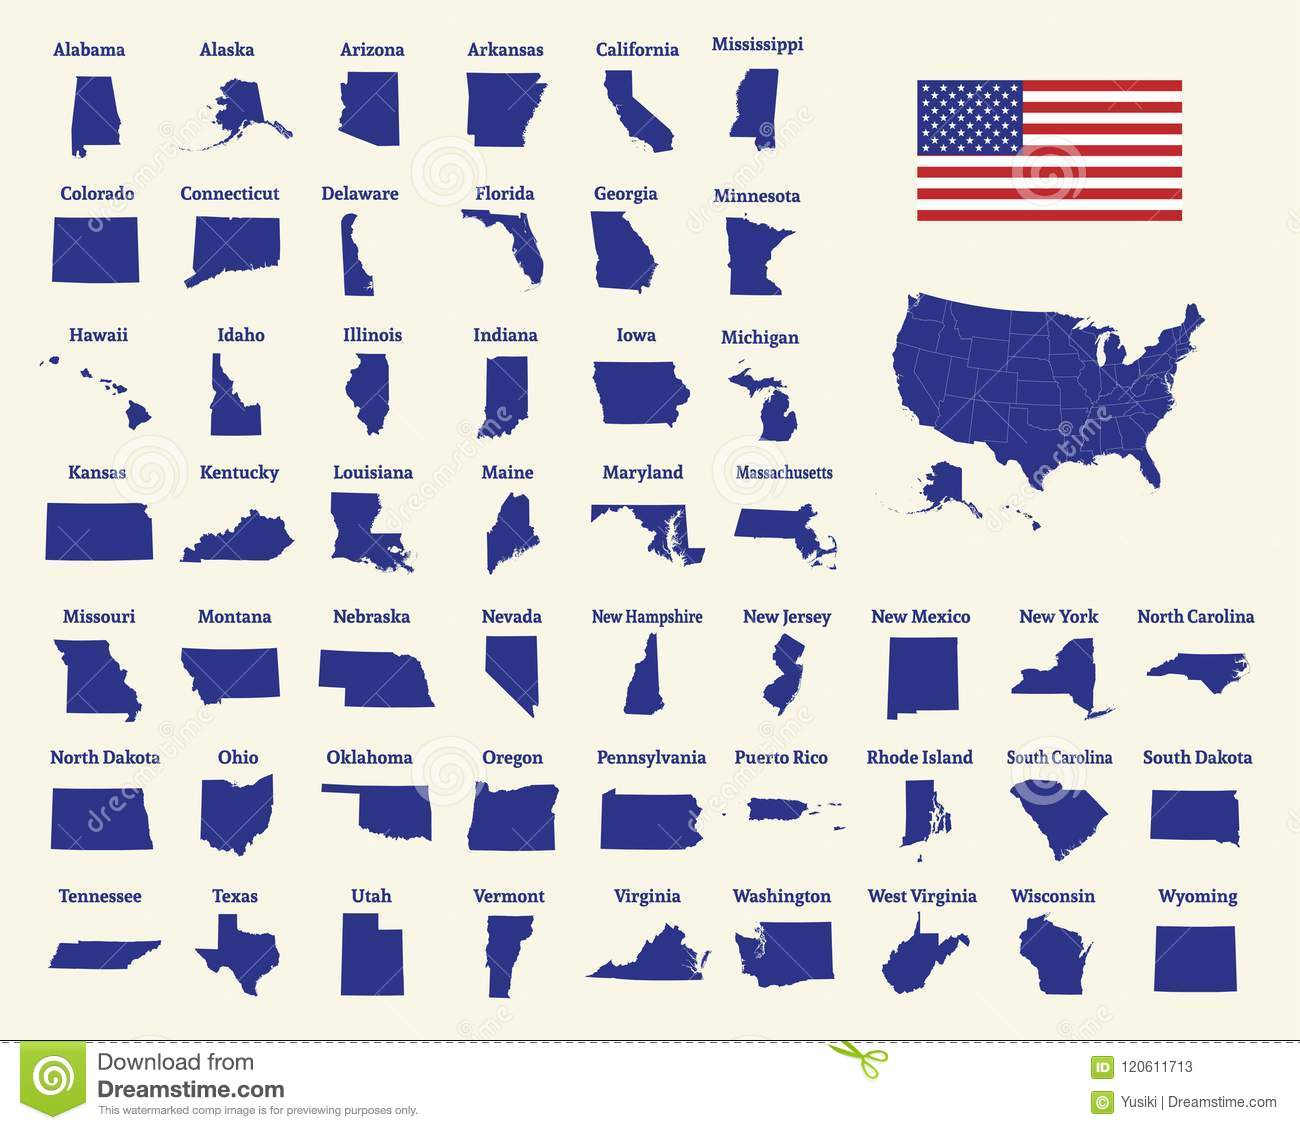 Outline Map Of The United States Of America 50 States Of The Us